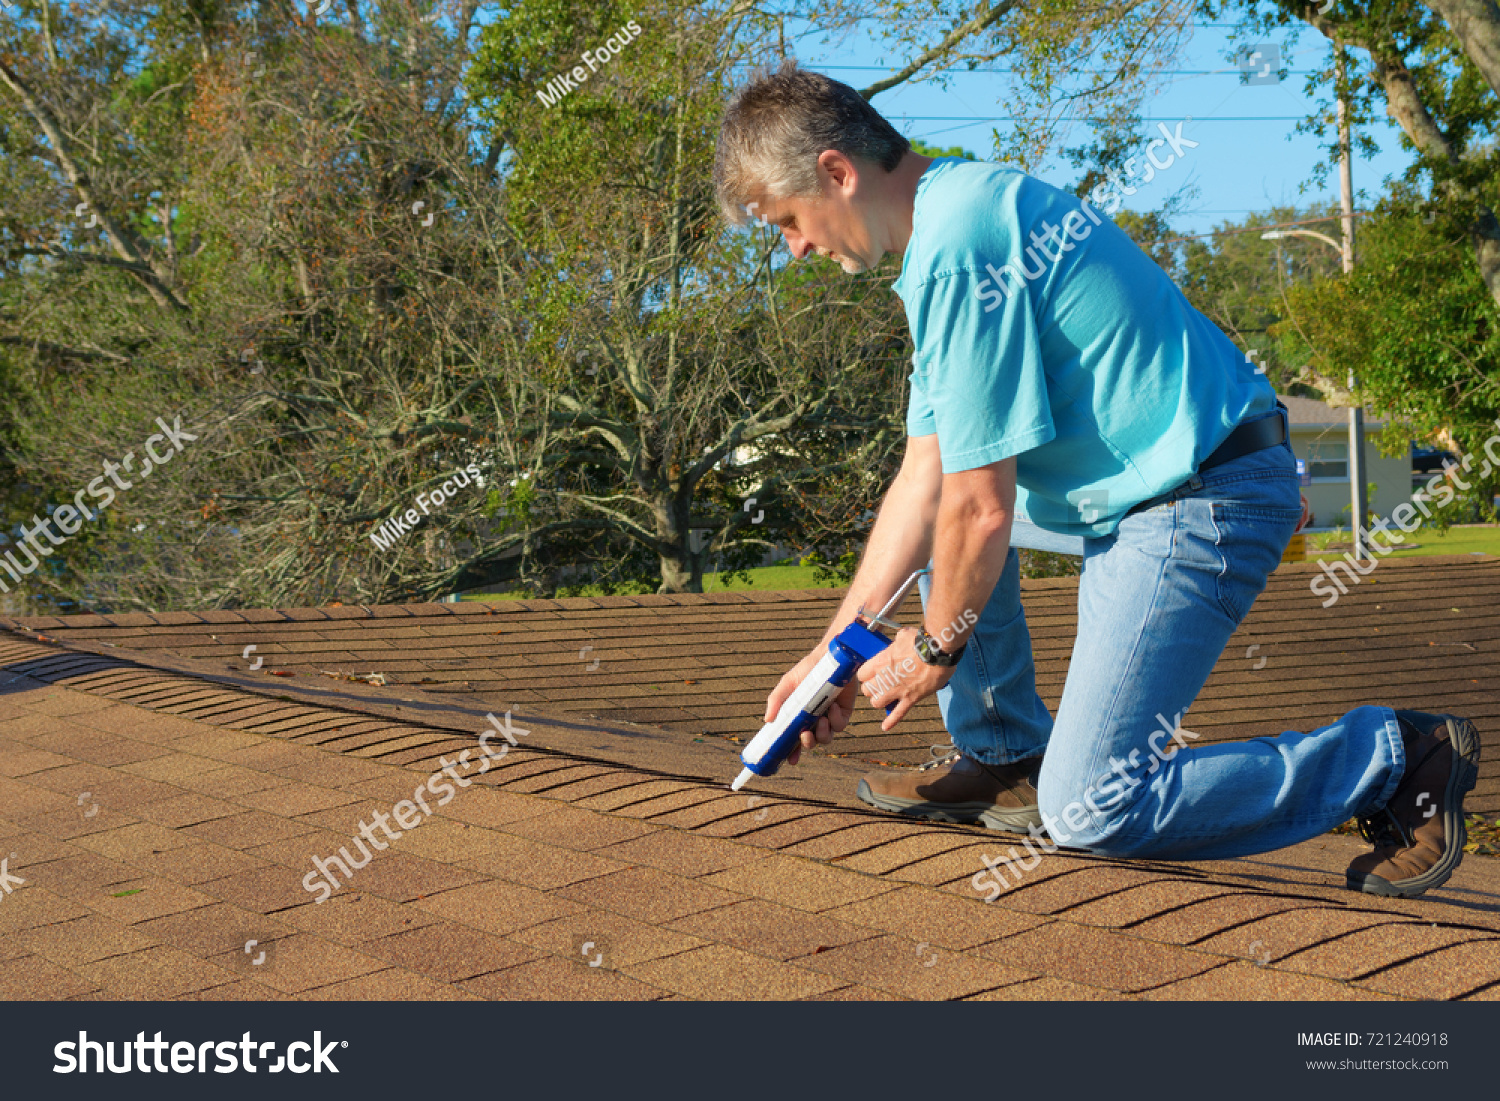 Homeowner Patching Roof With Roof Repair Tar In Caulk Gun Doing Home  Maintenance To Protect And